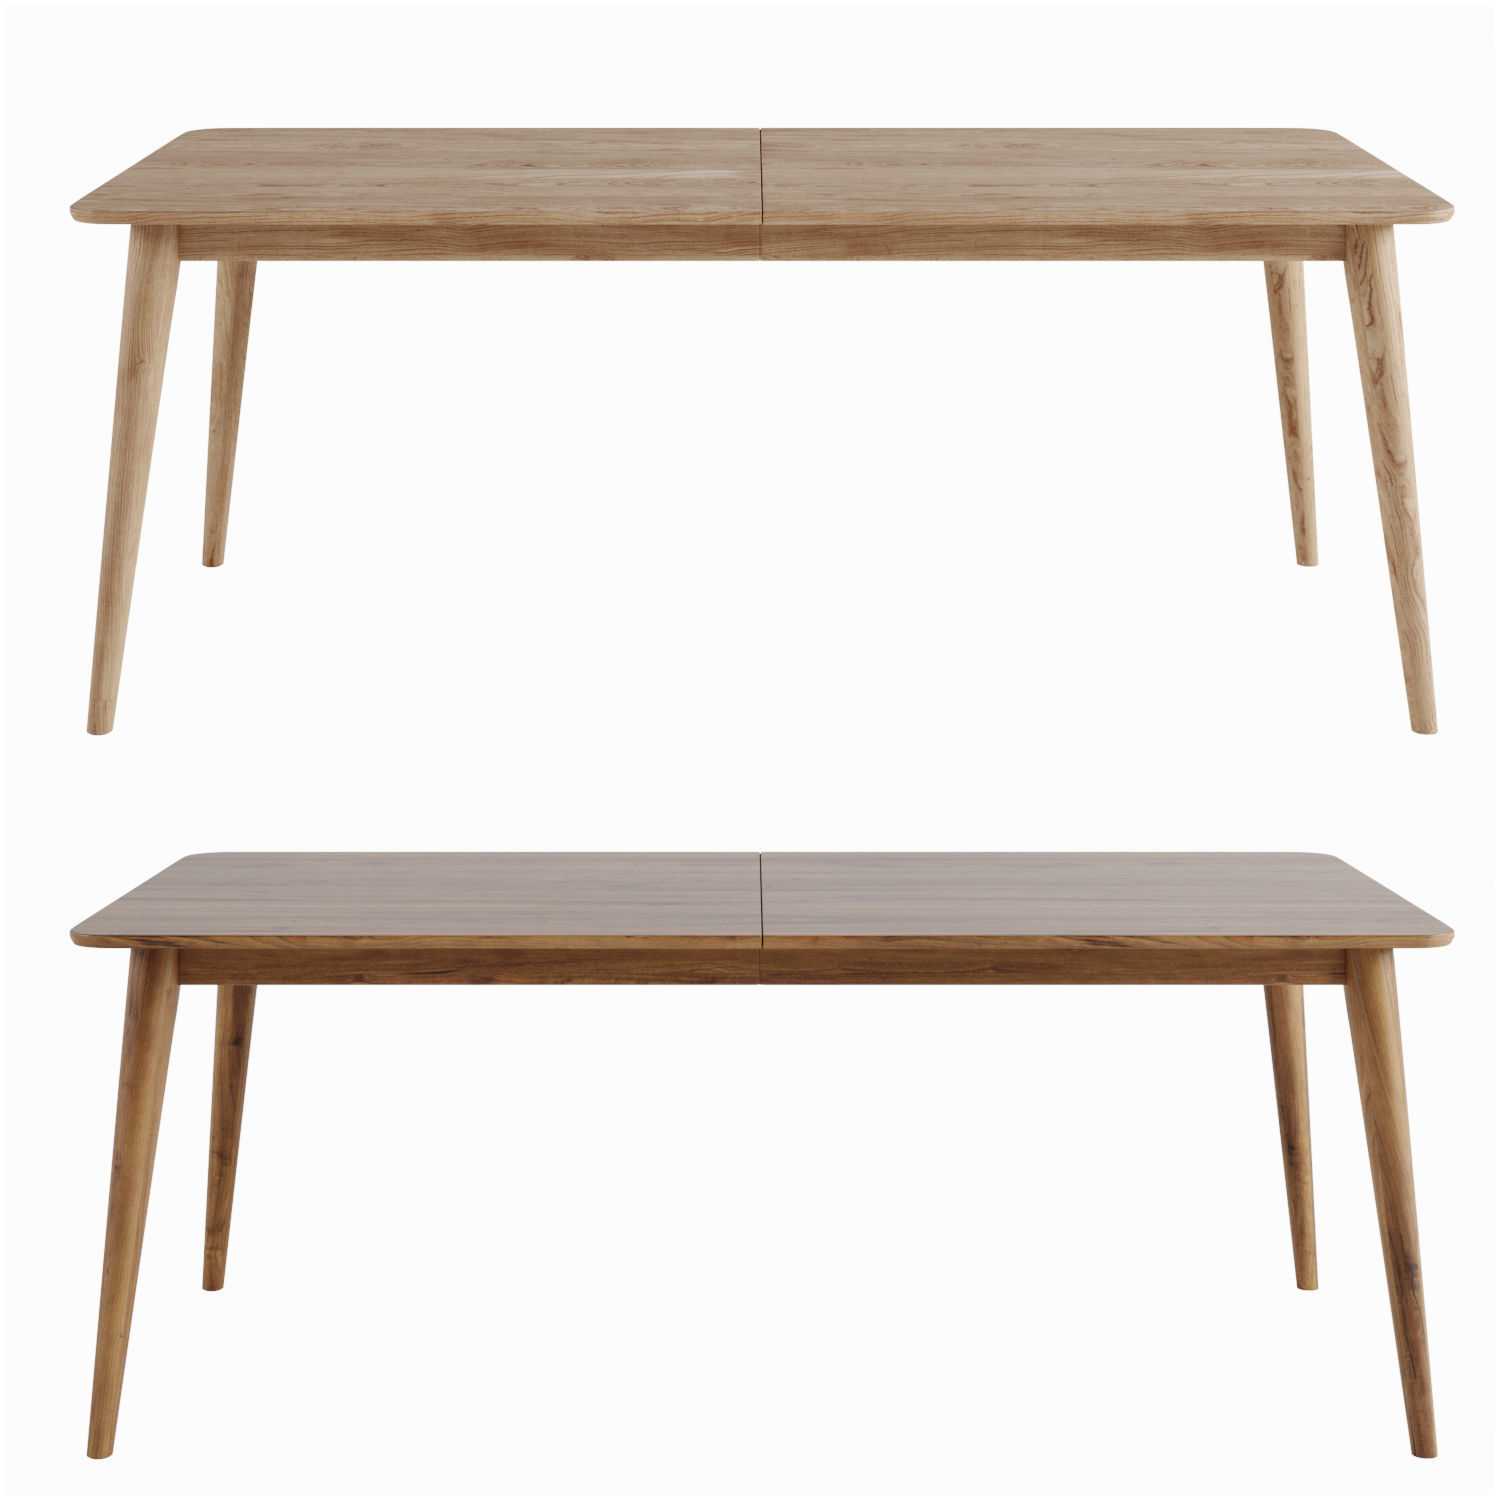 3d Dining Table Tate Walnut Extendable Midcentury Crate 1